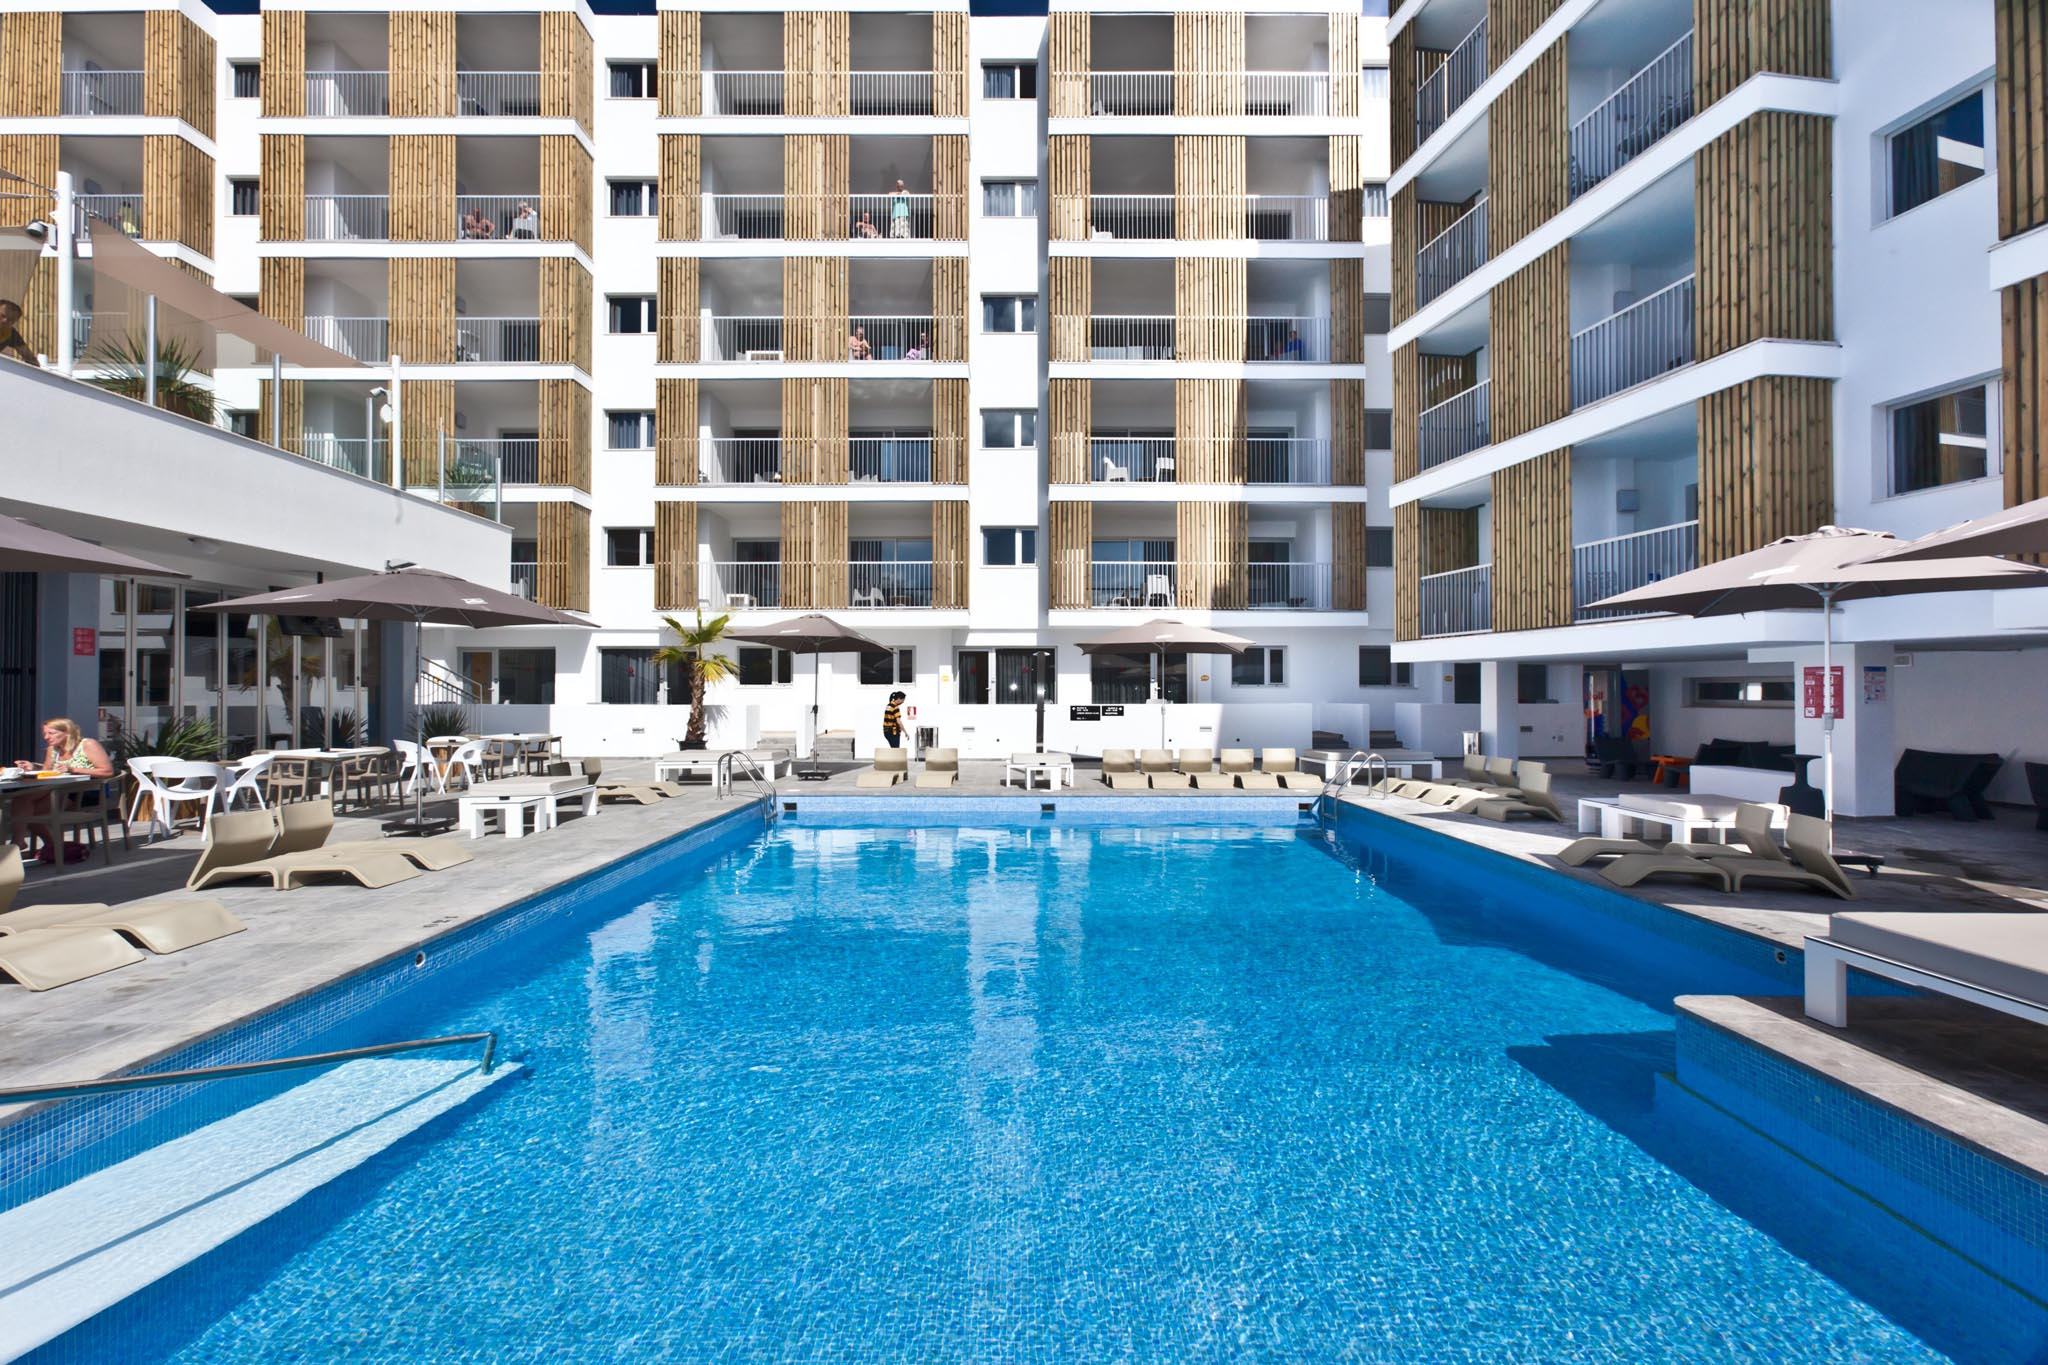 Ryans Ibiza Apartments - Aparthotel in Playa den Bossa